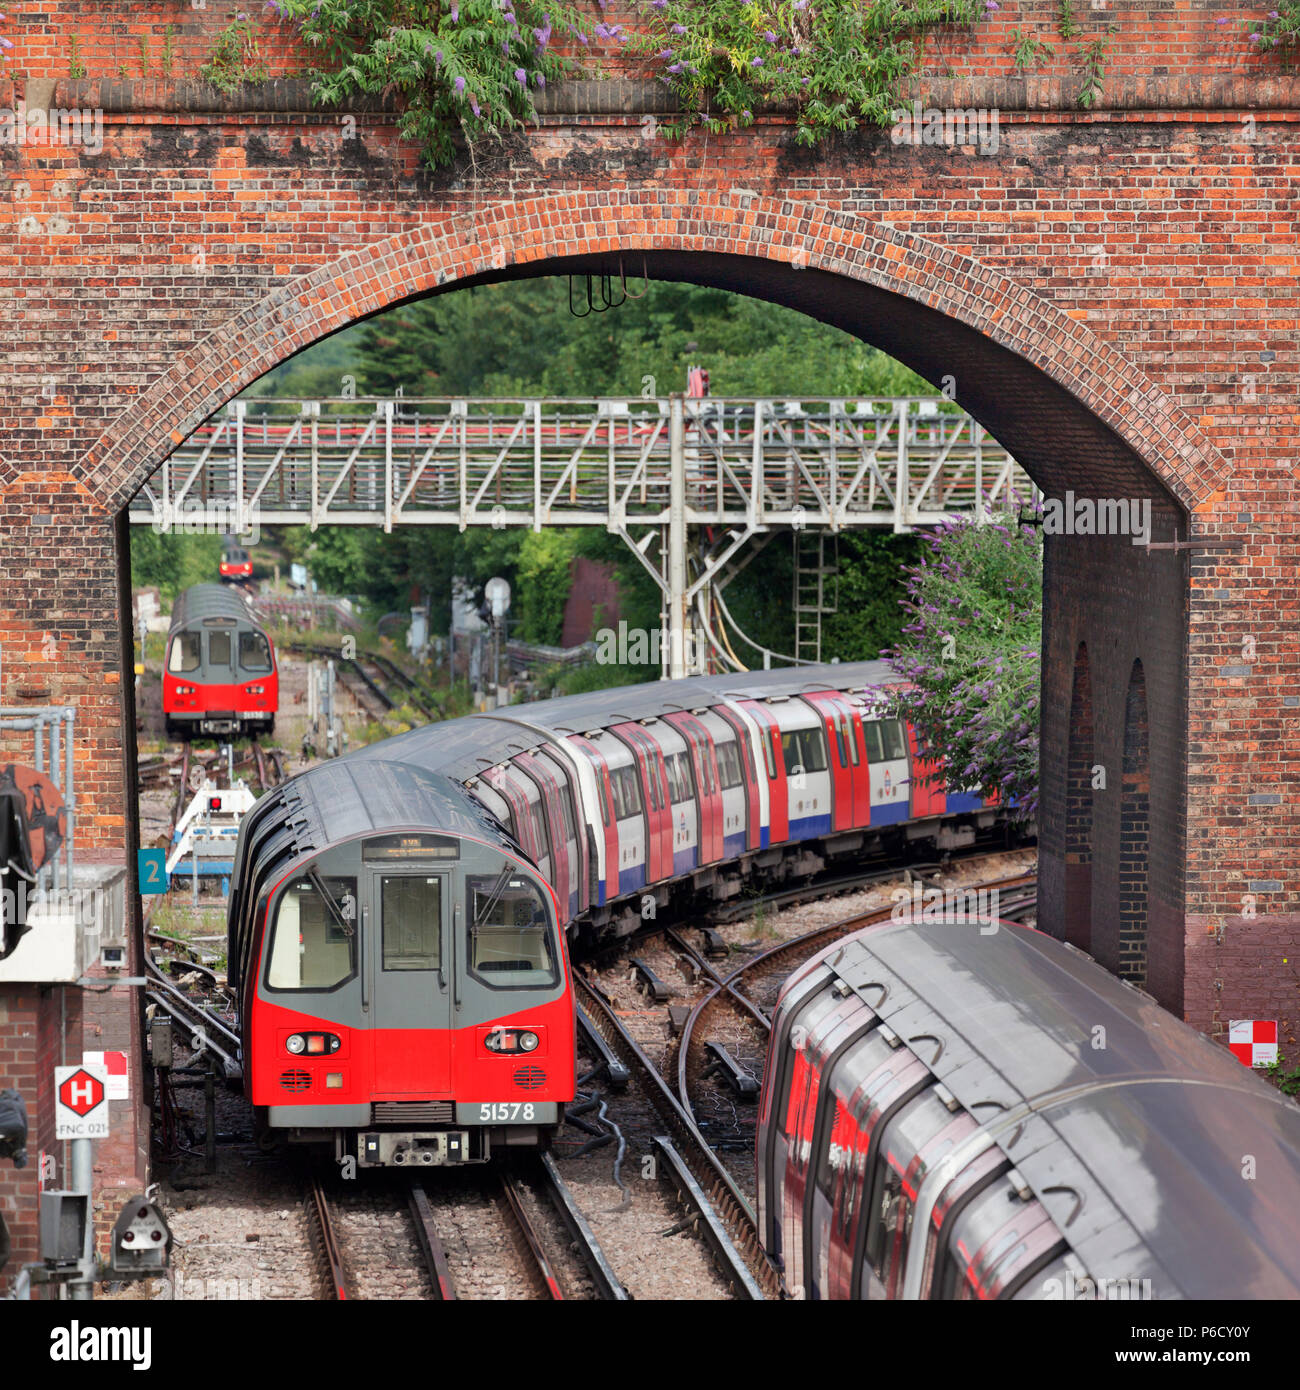 A jumble of Underground trains at Finchley Central where the Northern line branches to Mill Hill East and High Barnet. - Stock Image